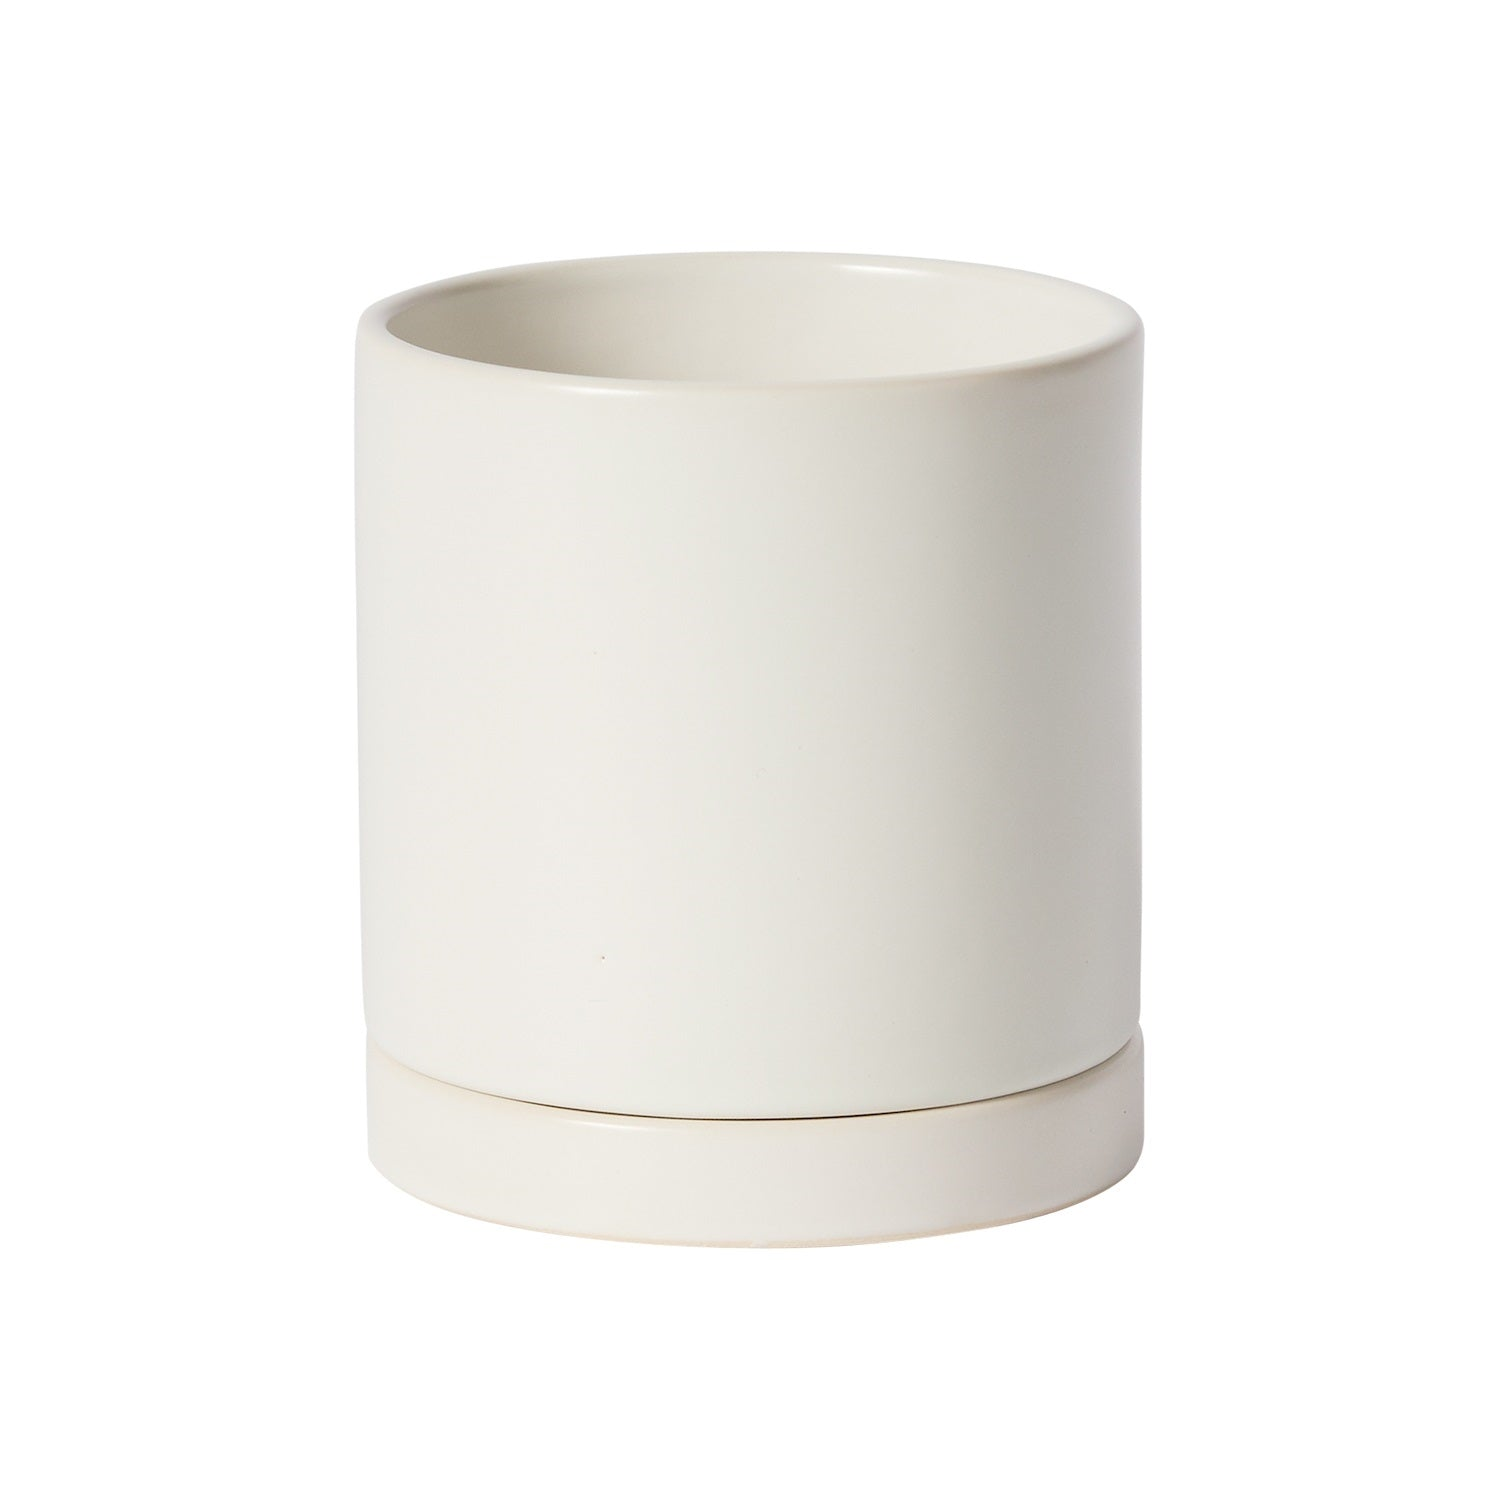 "Ceramic Pot with Saucer || 4.25"" in Matte White"